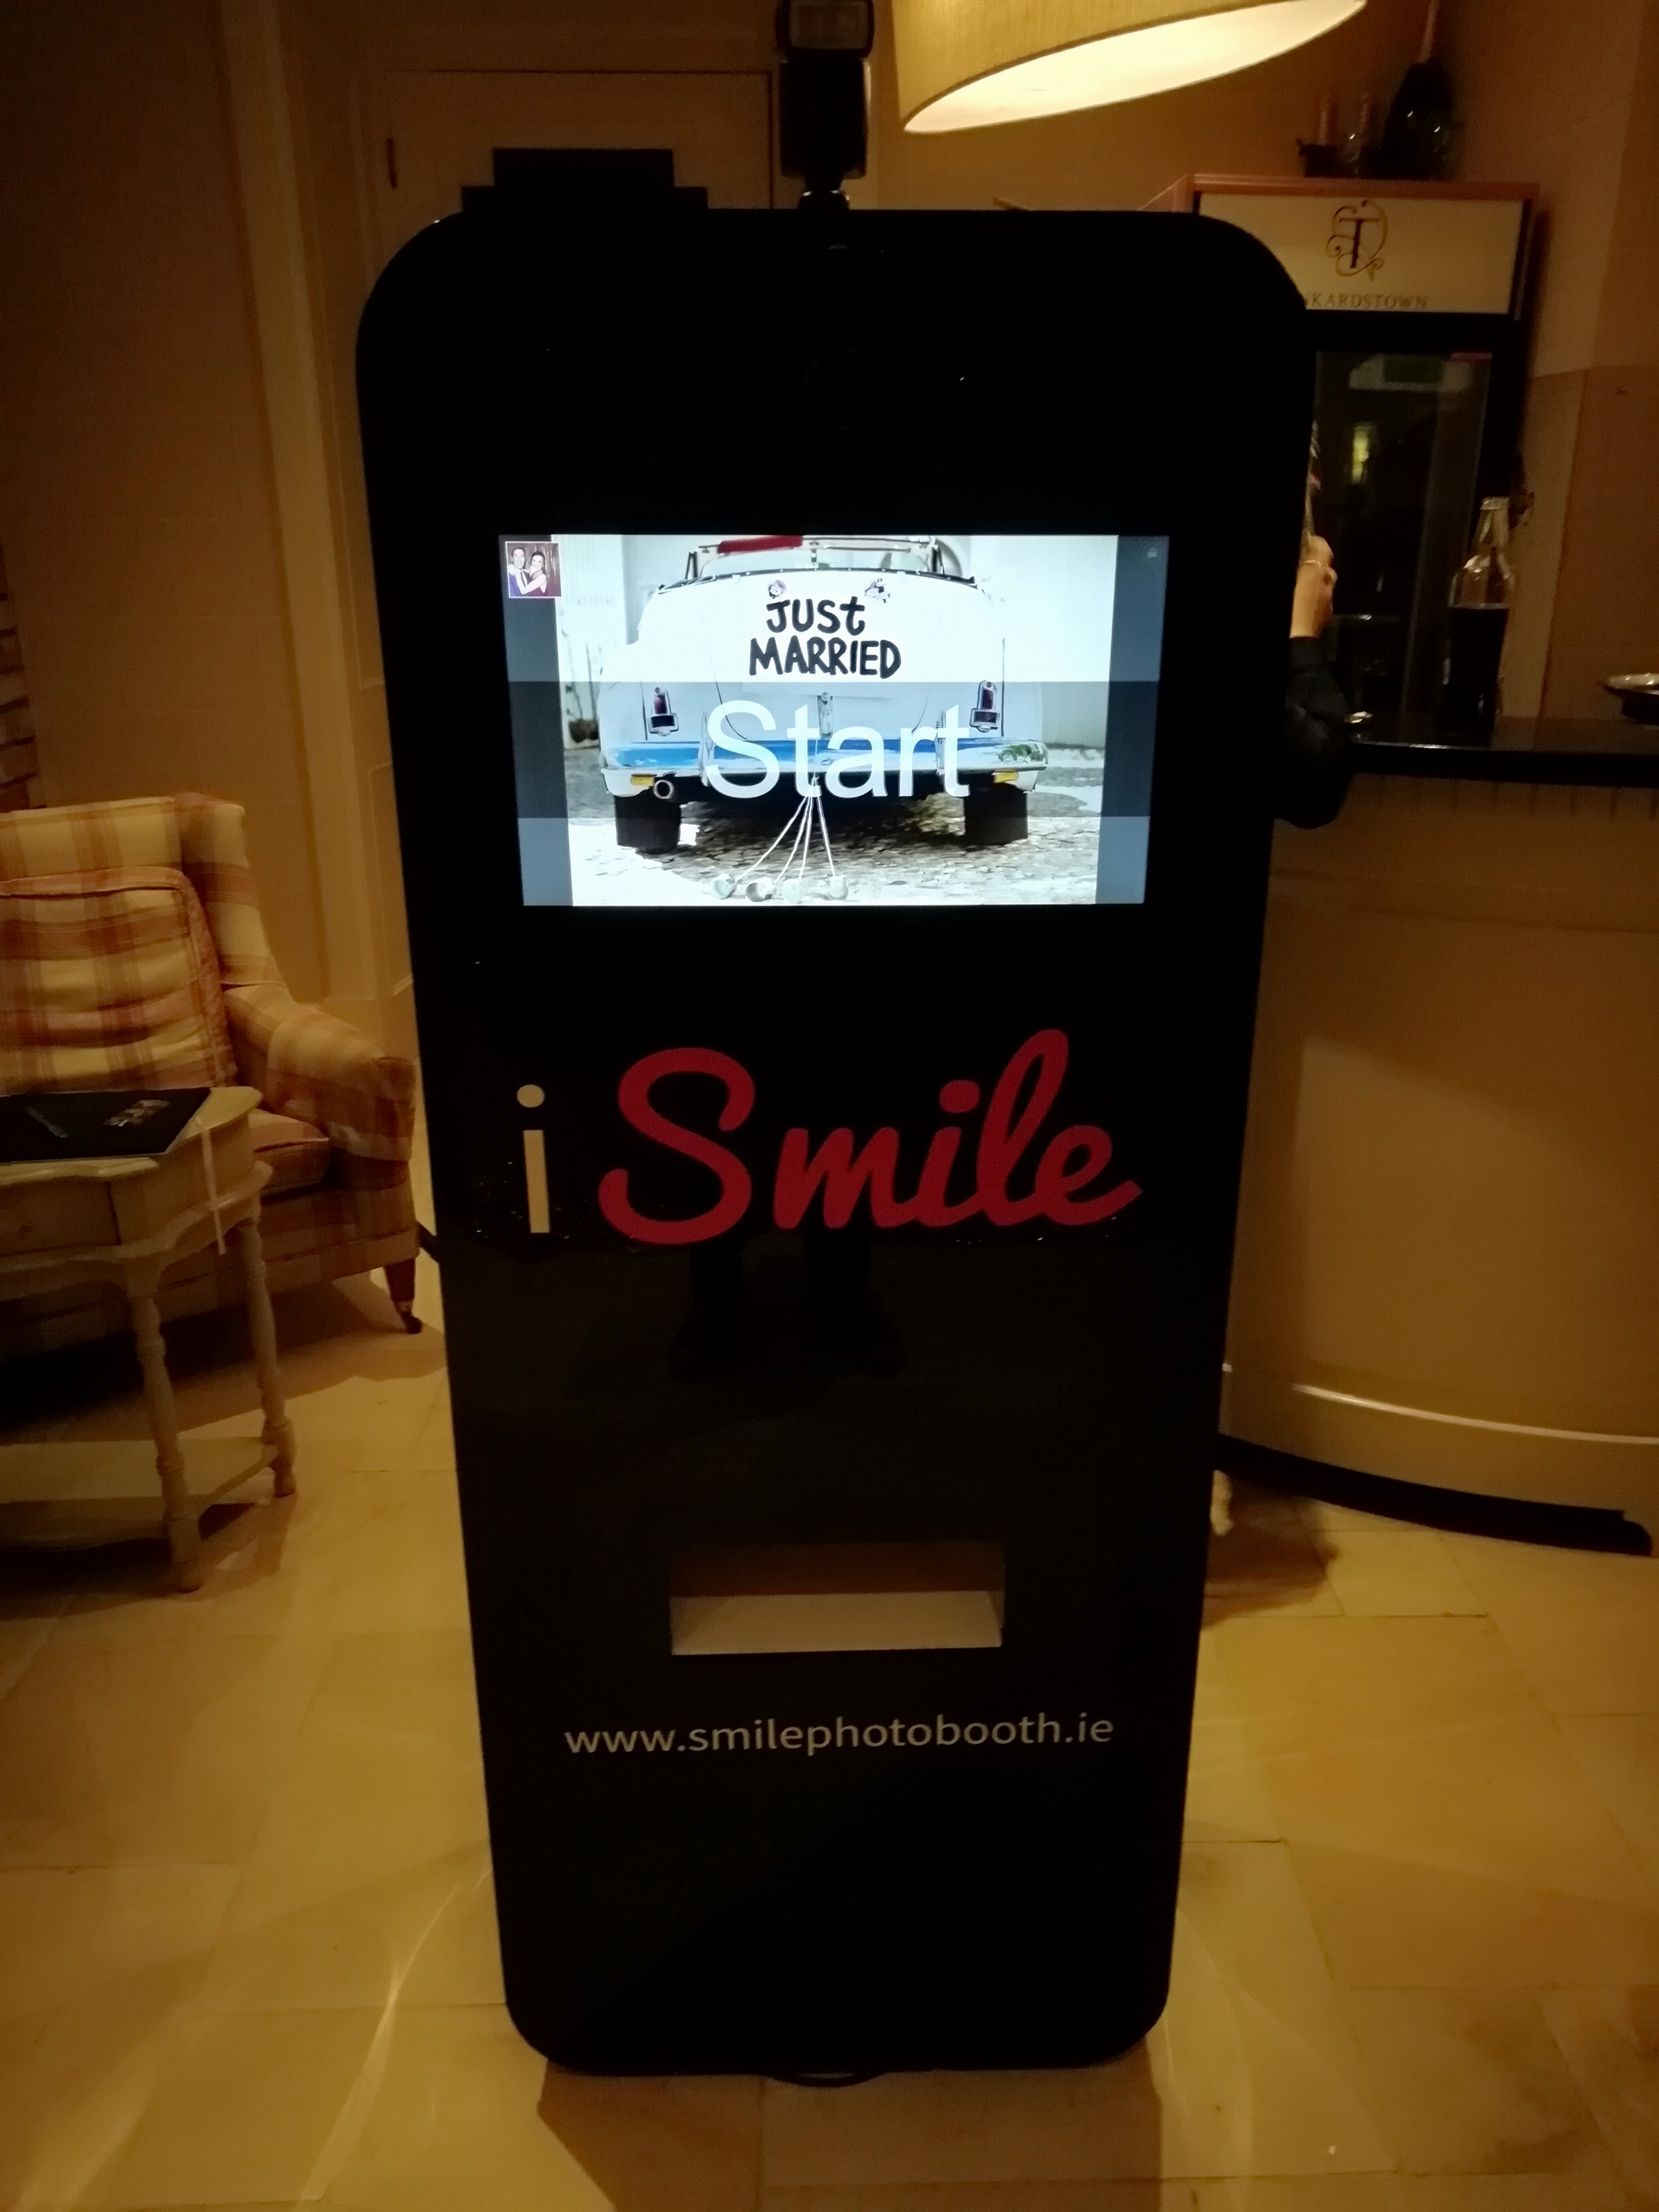 iSmile Photo Booth